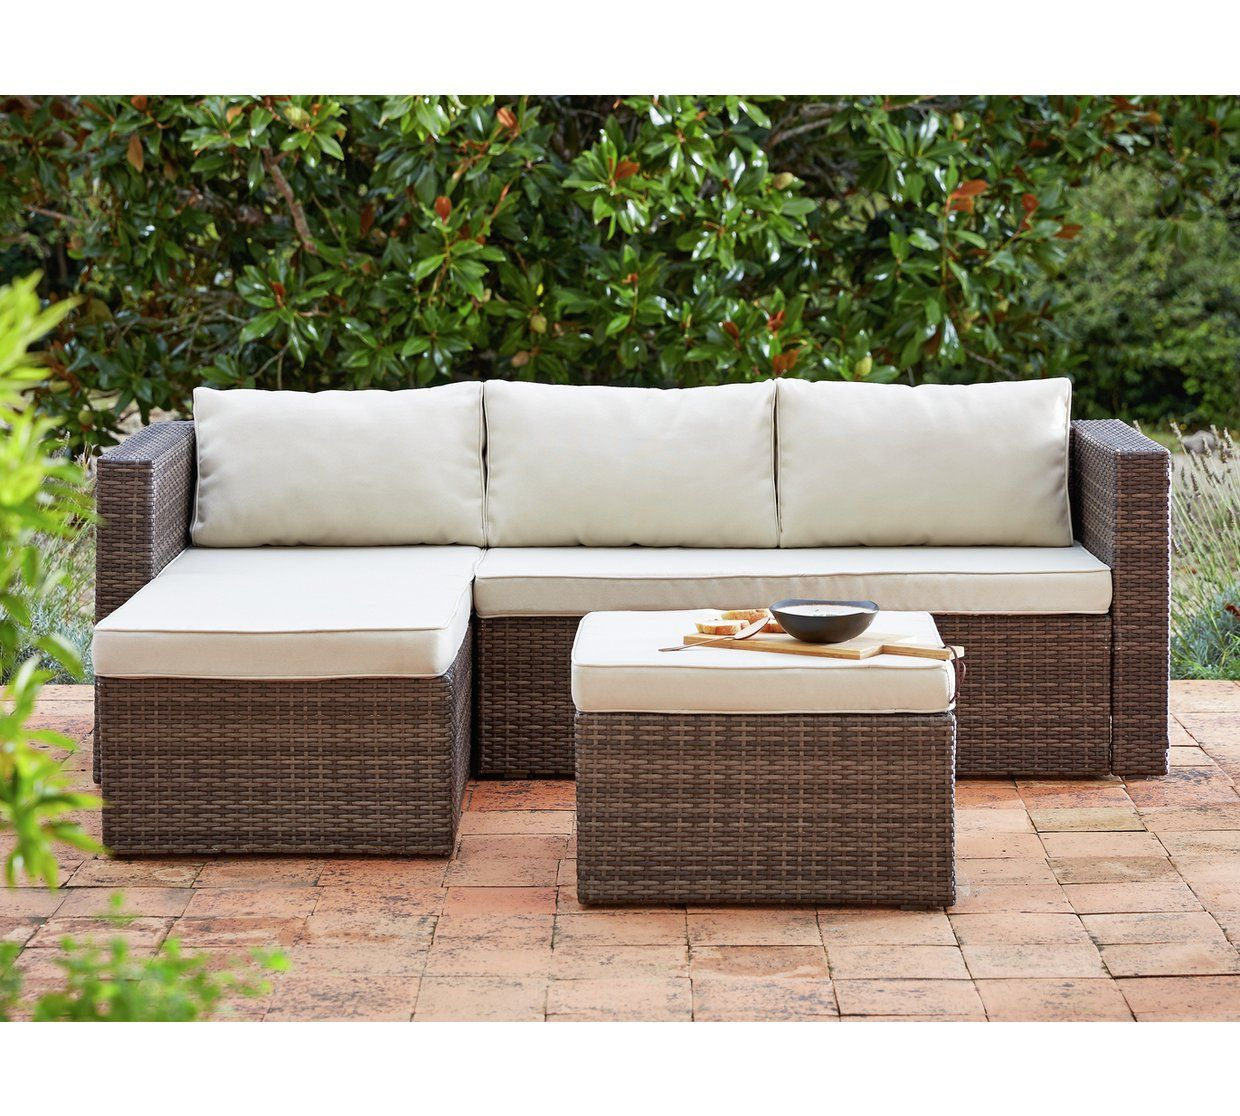 Buy Home 3 Seater Rattan Effect Mini Corner Sofa At Argos Co Uk Your Online Shop For Garden Cha Corner Sofa Garden Rattan Garden Furniture Rattan Corner Sofa